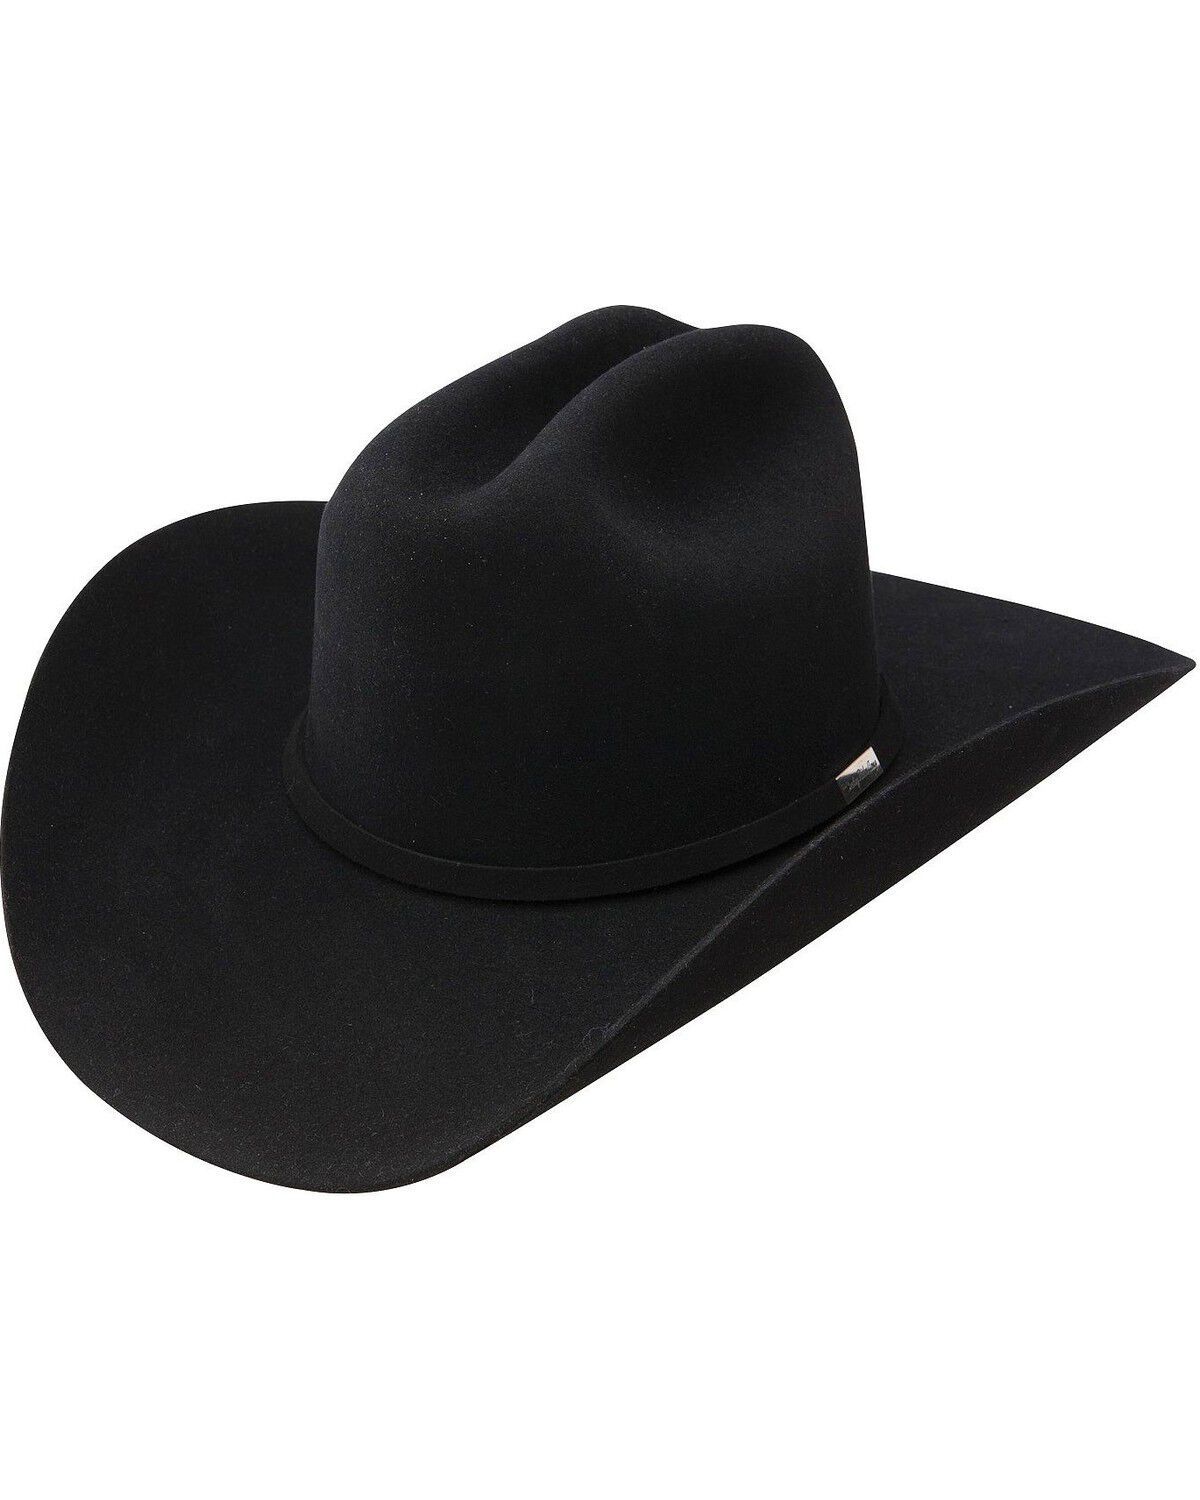 Men s Felt Wool Western Hats 557a24195f5